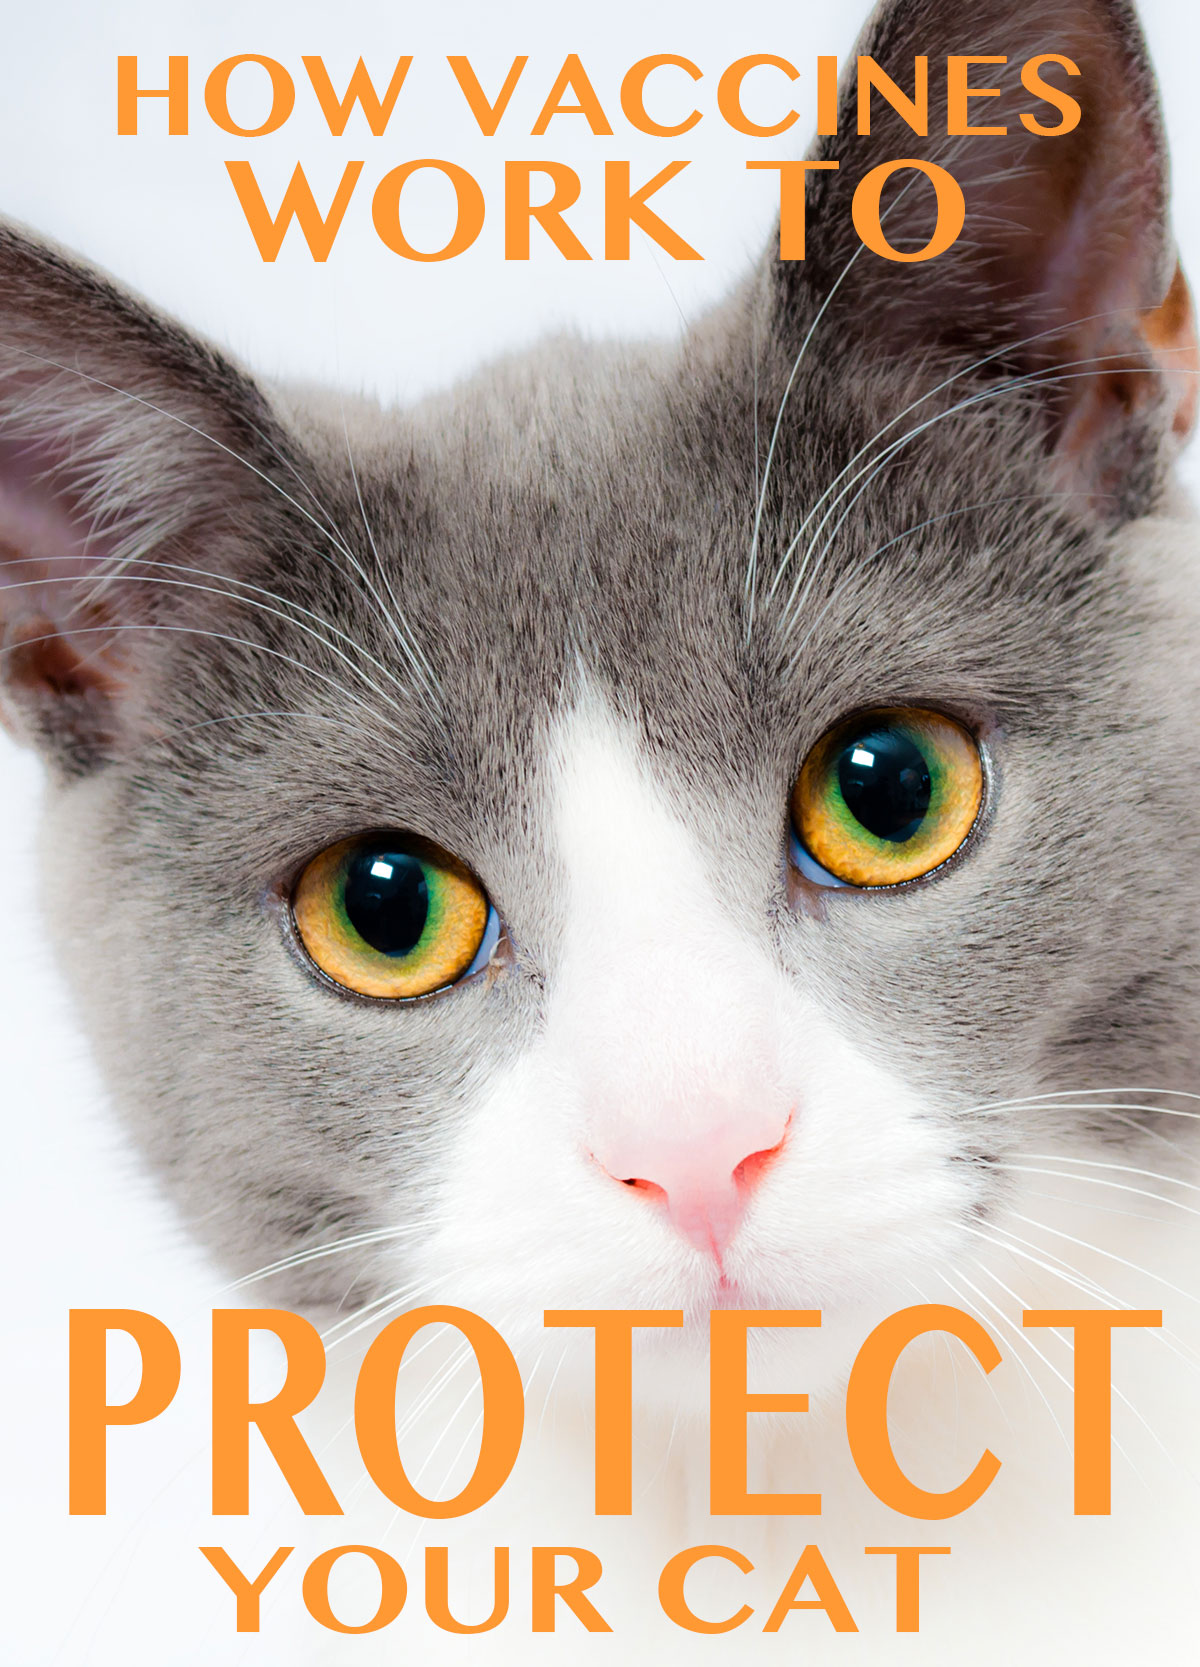 how vaccines work to protect your cat from disease